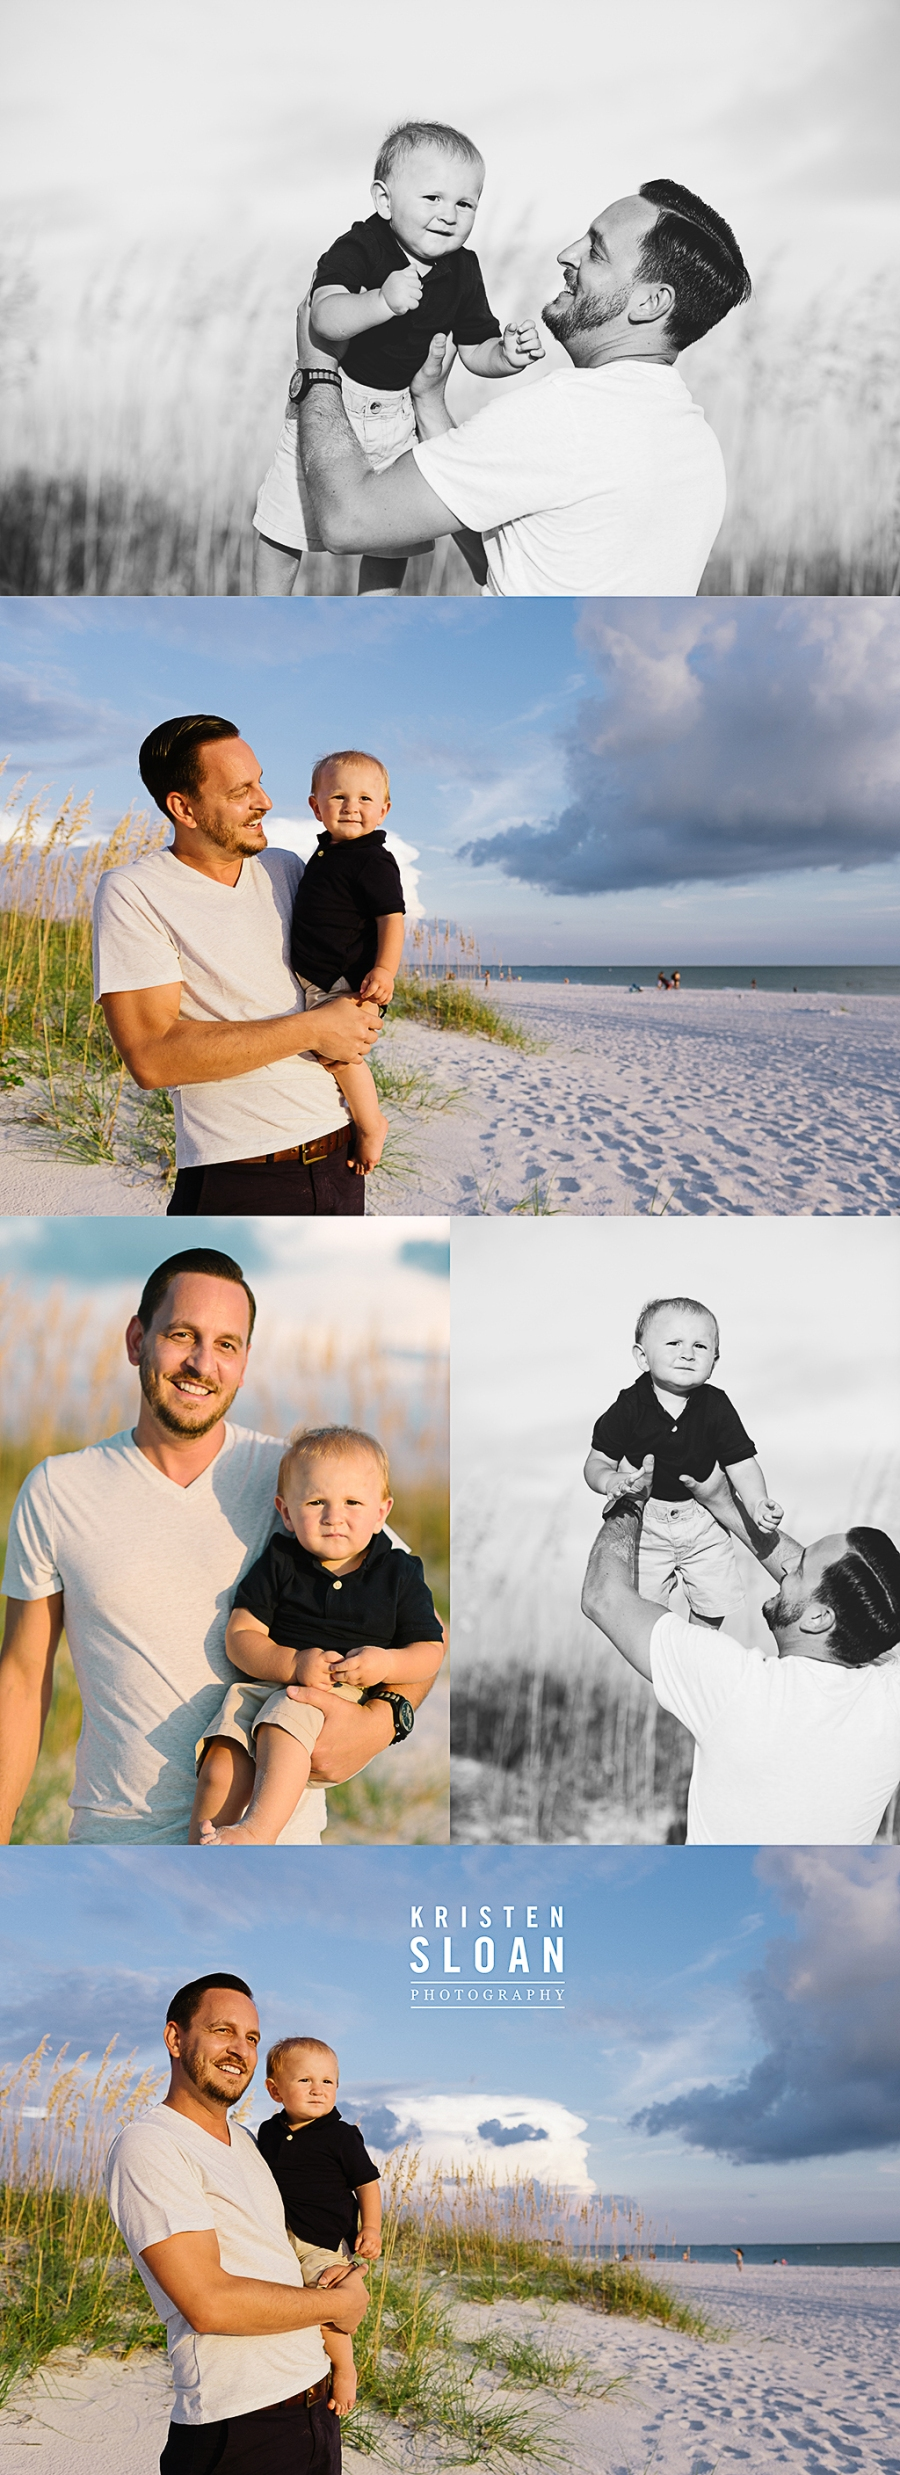 reasure Island Family Kids Baby Beach Photos at Sunset by Kristen Sloan Photography